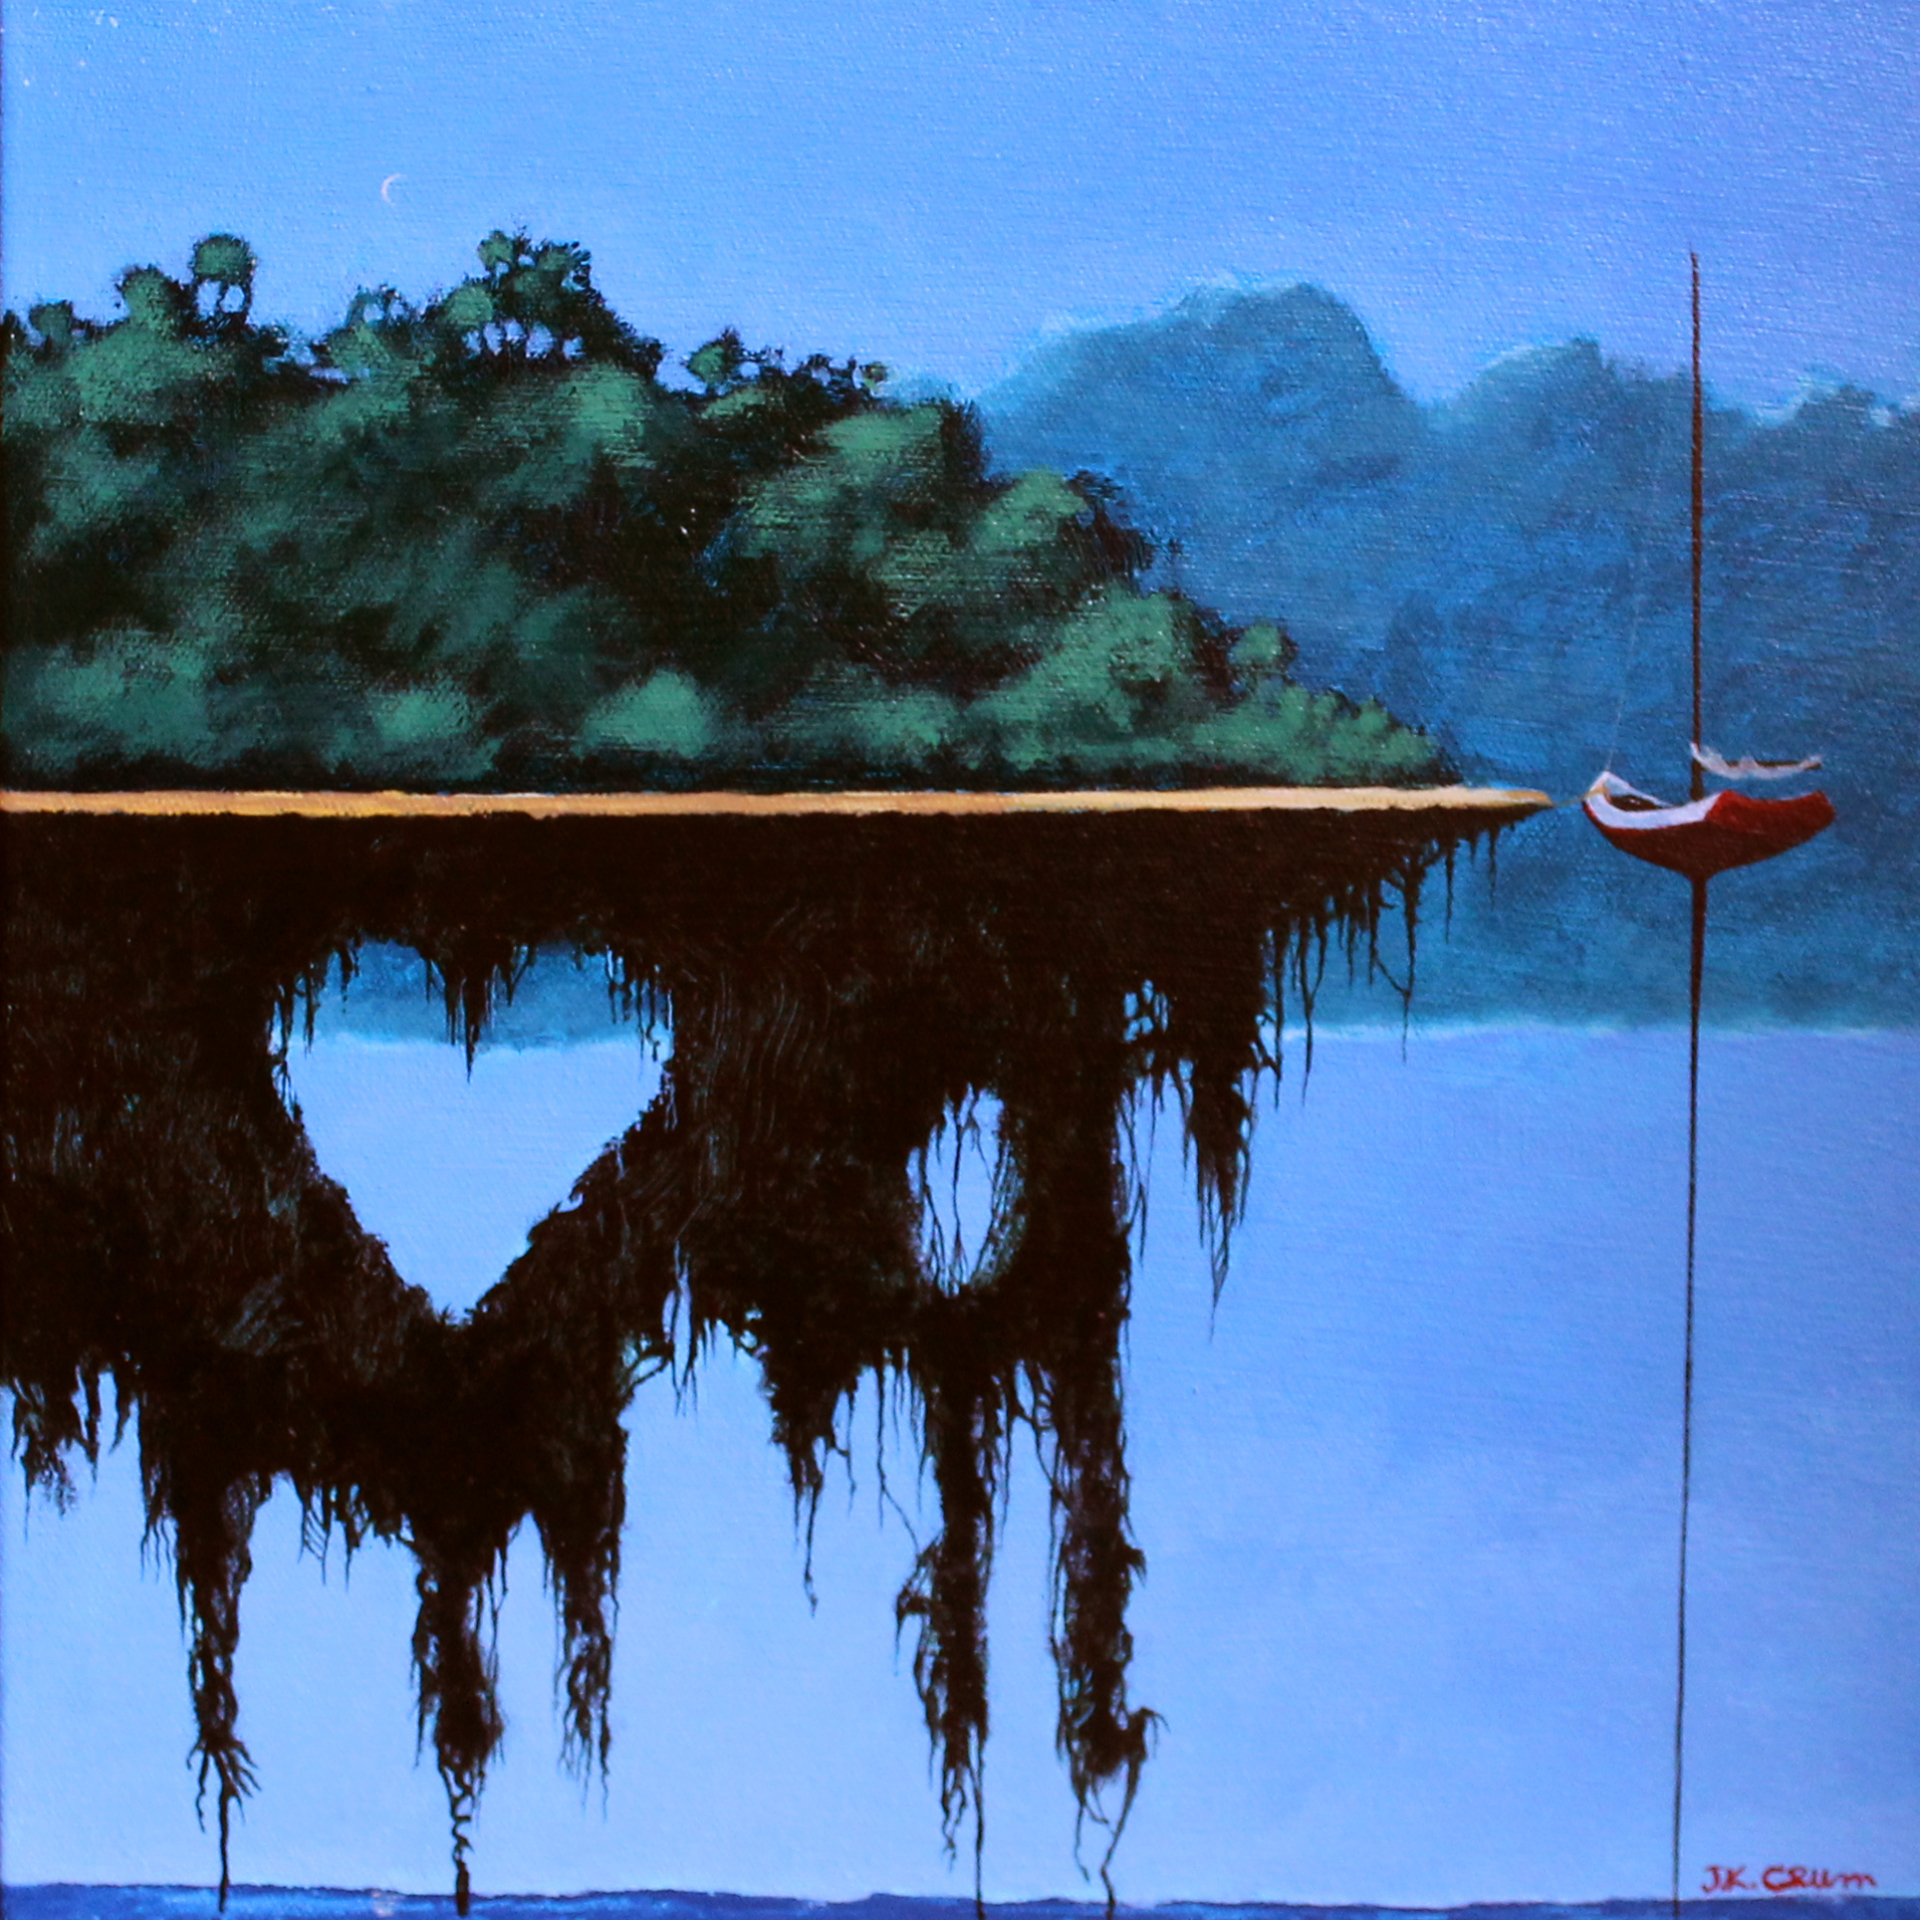 hilton head art, low country art, lowcountry artist, south carolina artist, Gently surreal island art by J. K. Crum